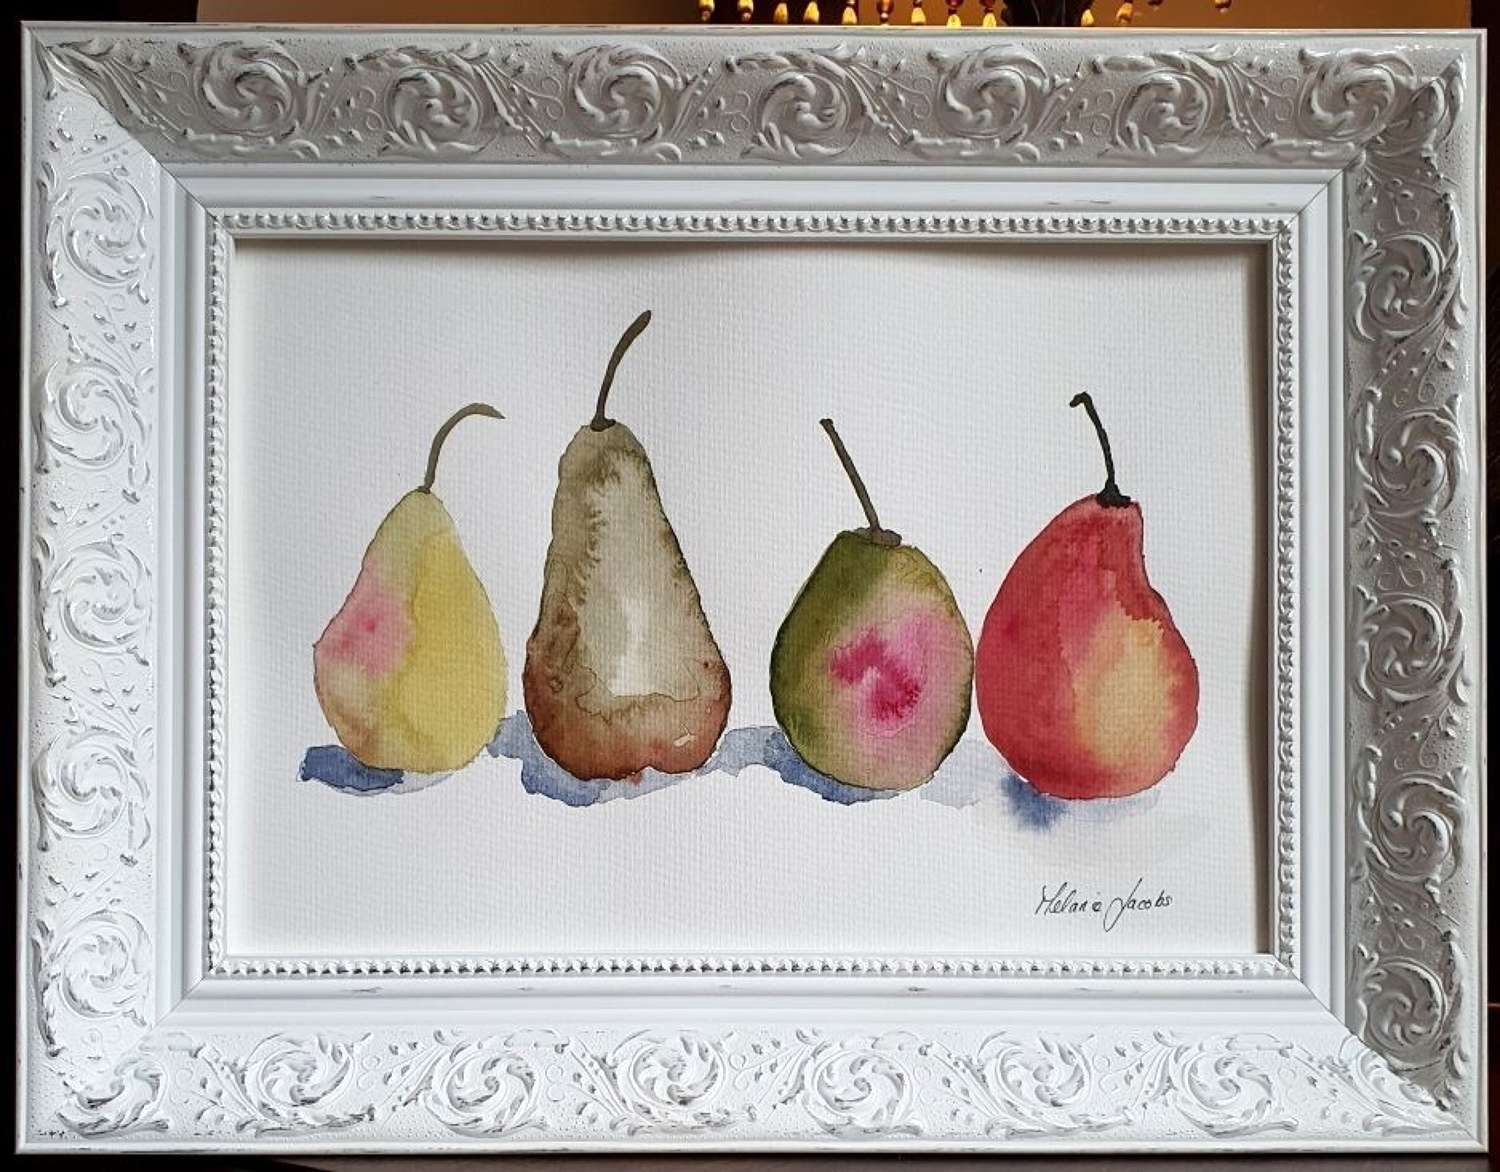 The Perfect ''Pair'' - Original Watercolour Painting by Melanie Jacobs